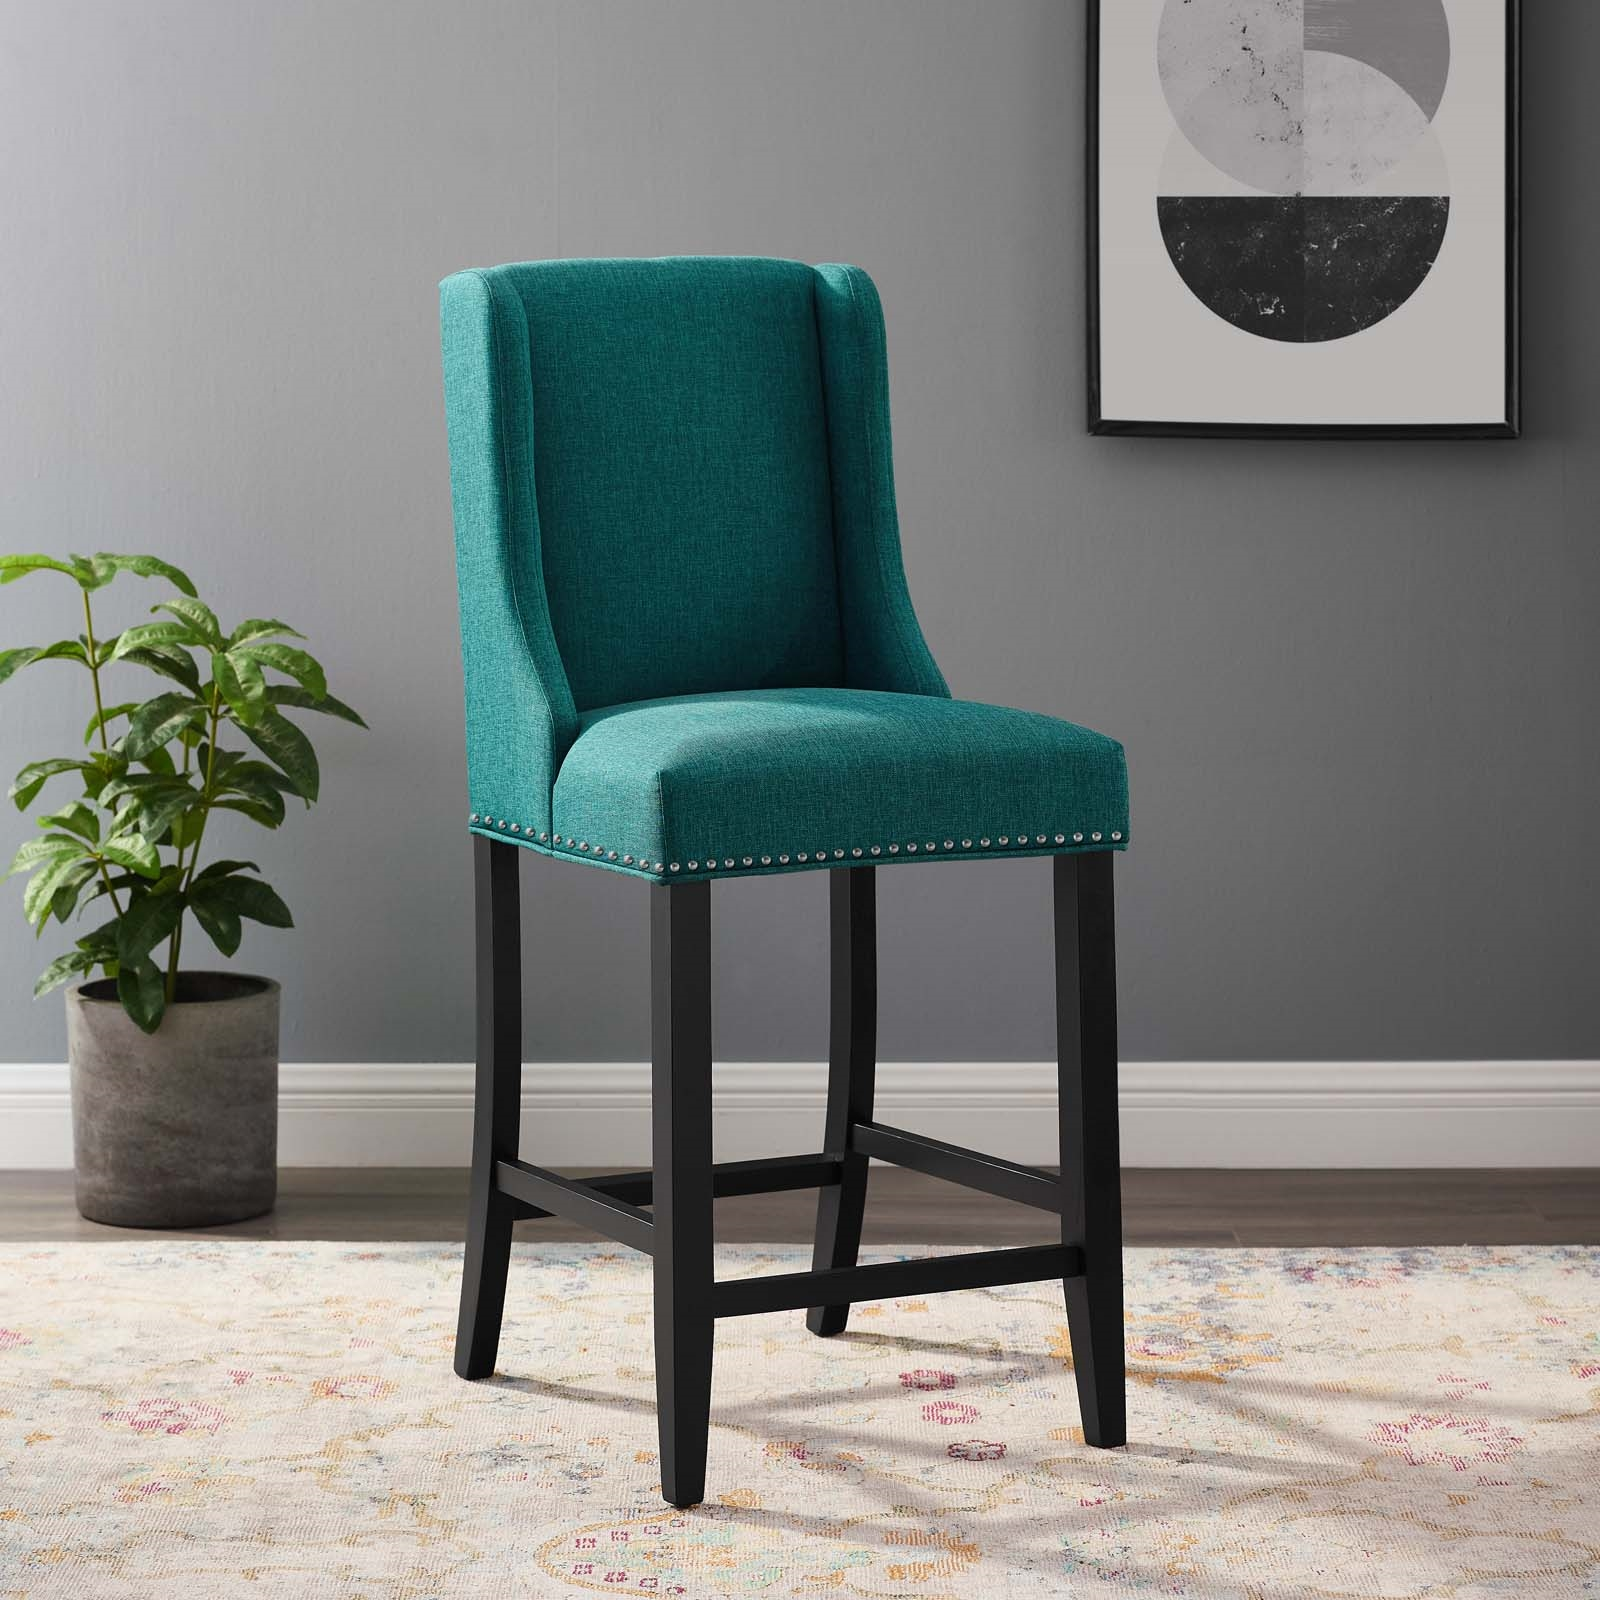 Baron Upholstered Fabric Counter Stool in Teal